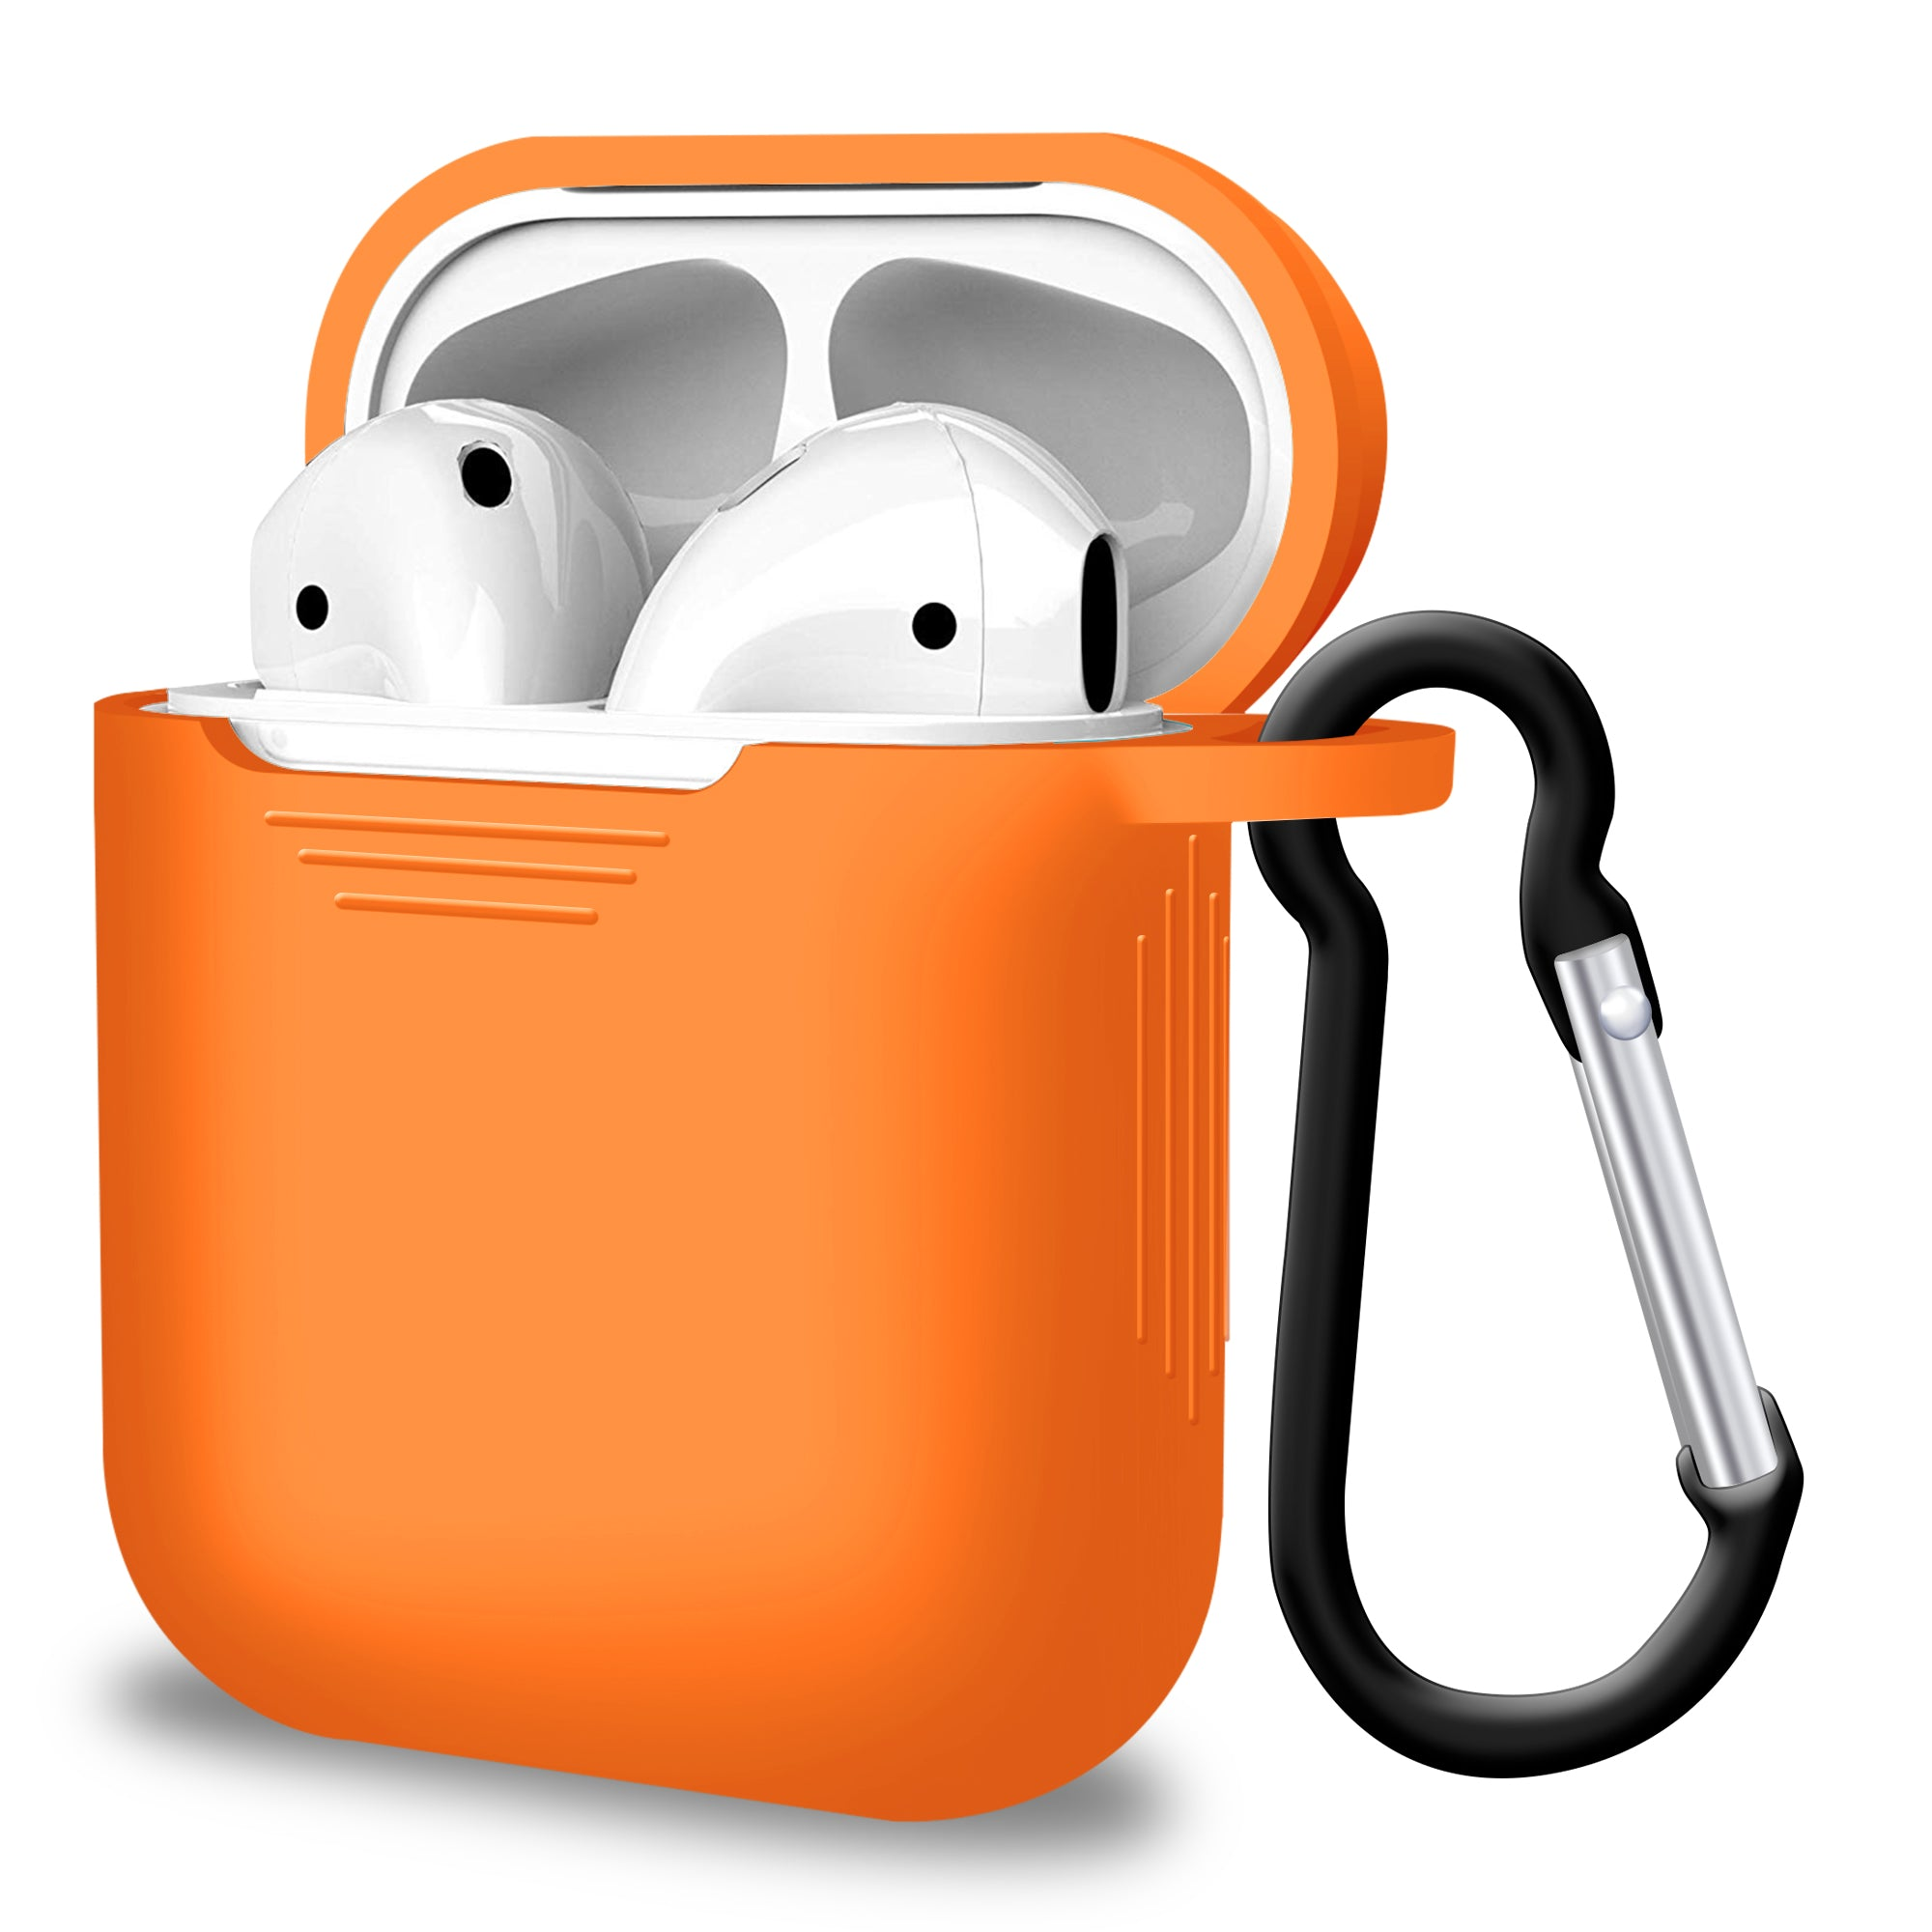 2 in 1 Apple Airpods Silicone Case Earphones Charge Skin Cover Orange, Audio by TradeNRG